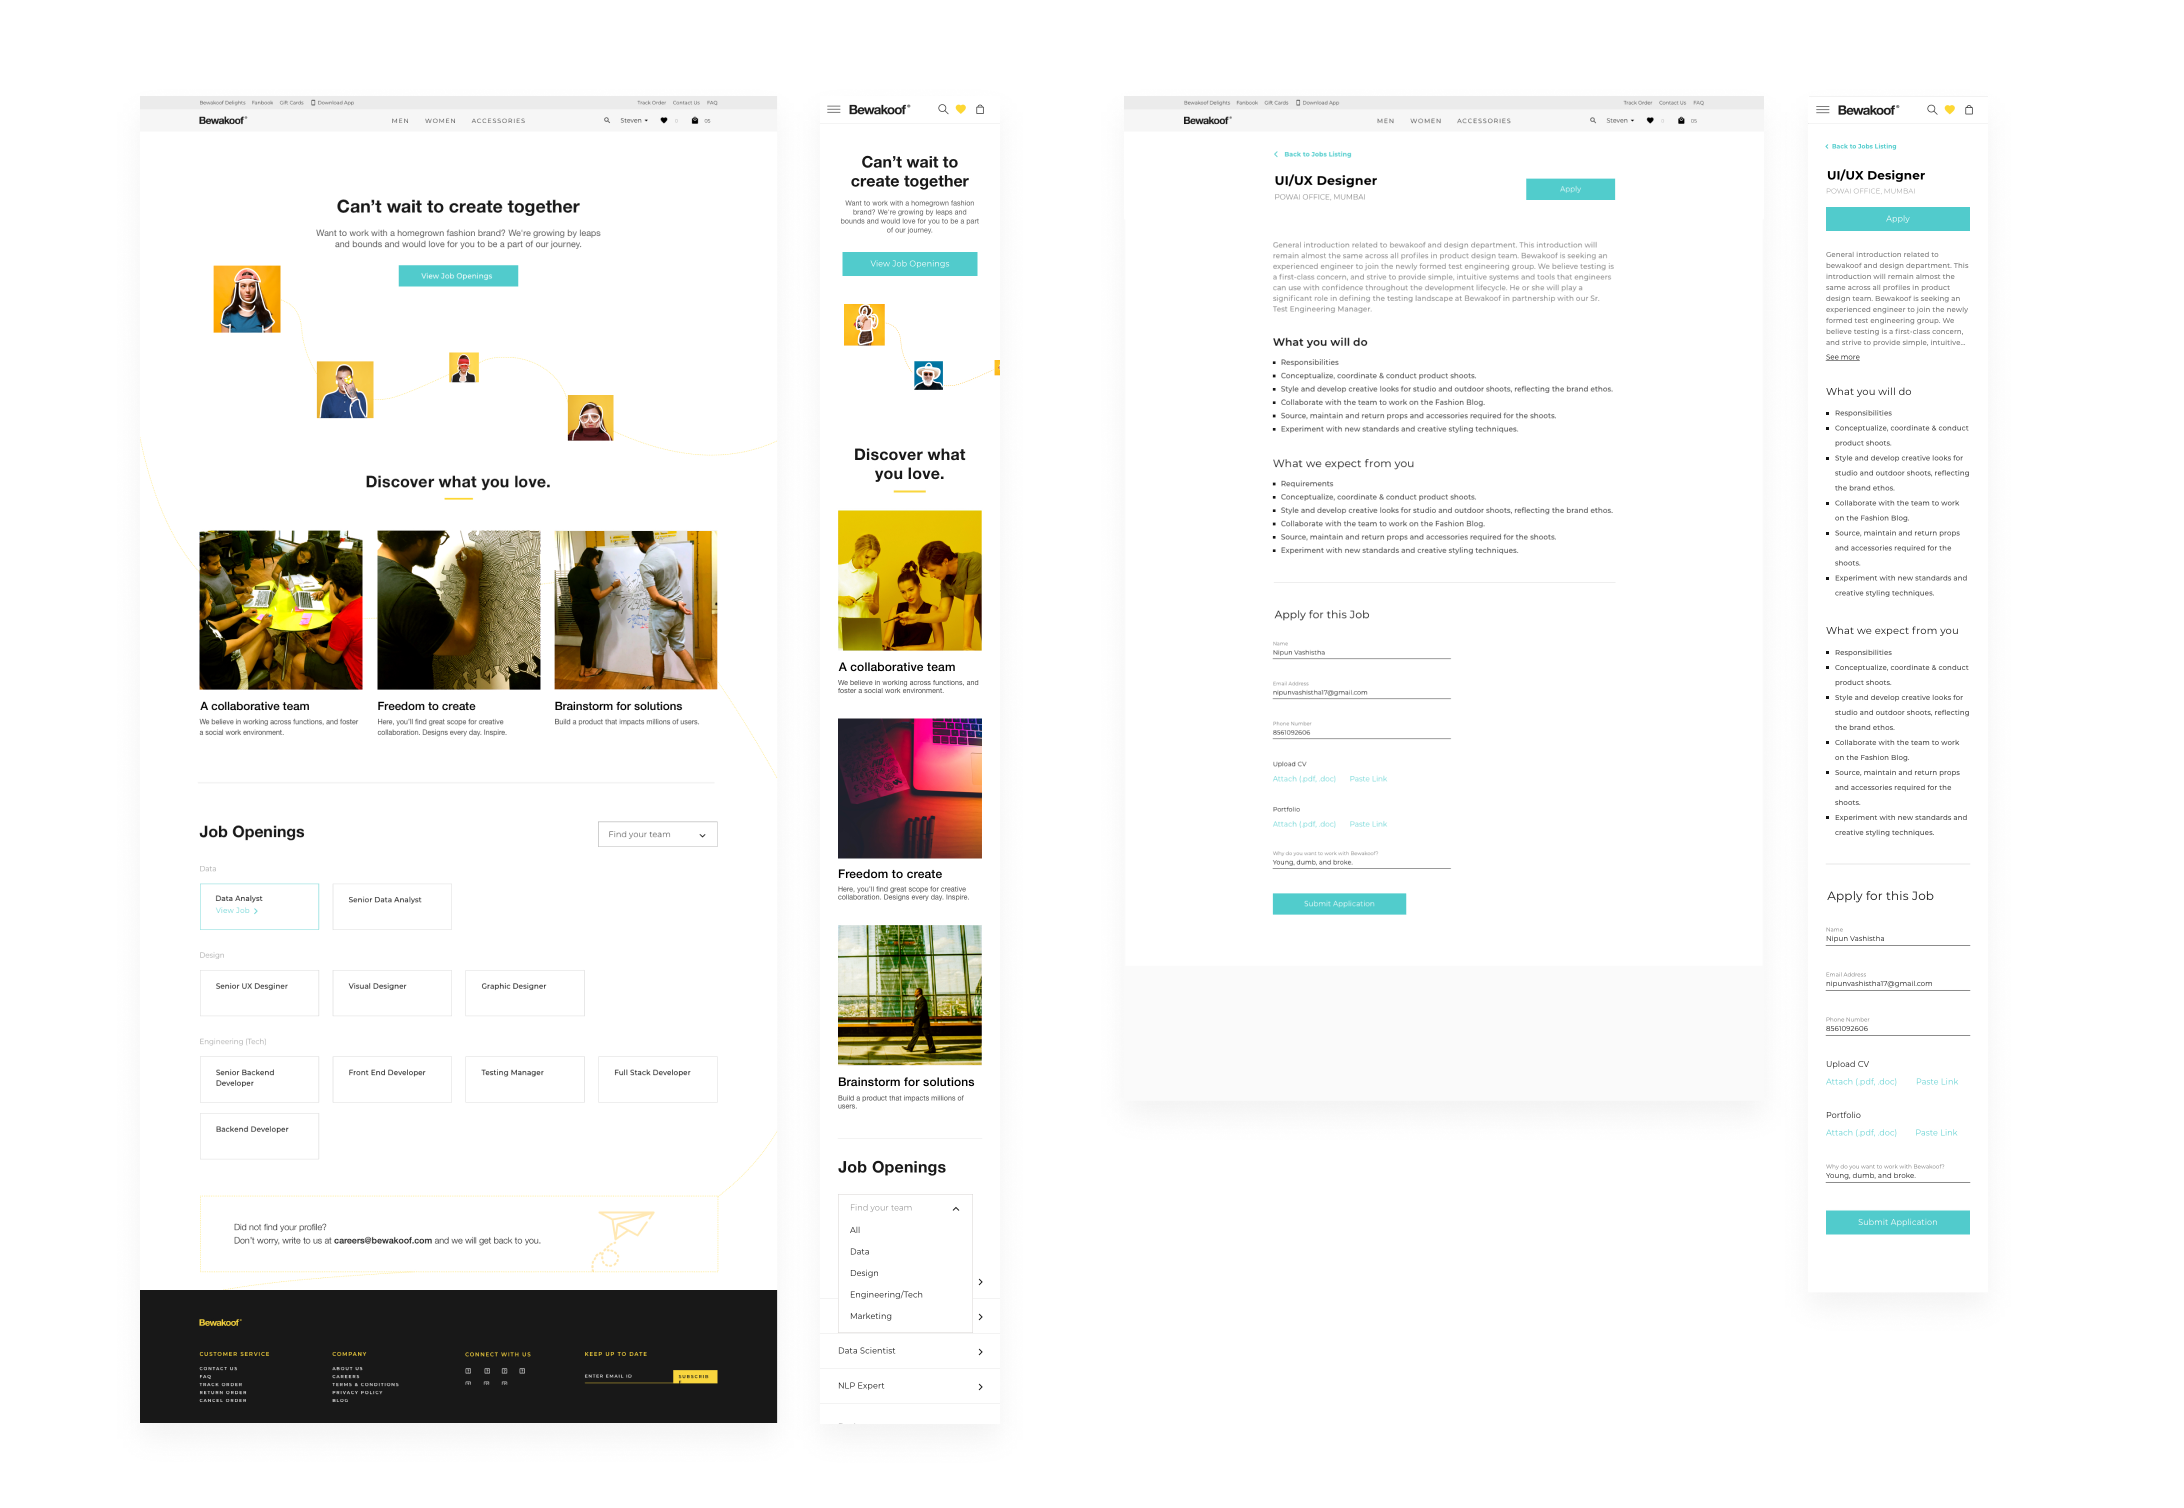 Designing Careers Page at Bewakoof com - UX Planet